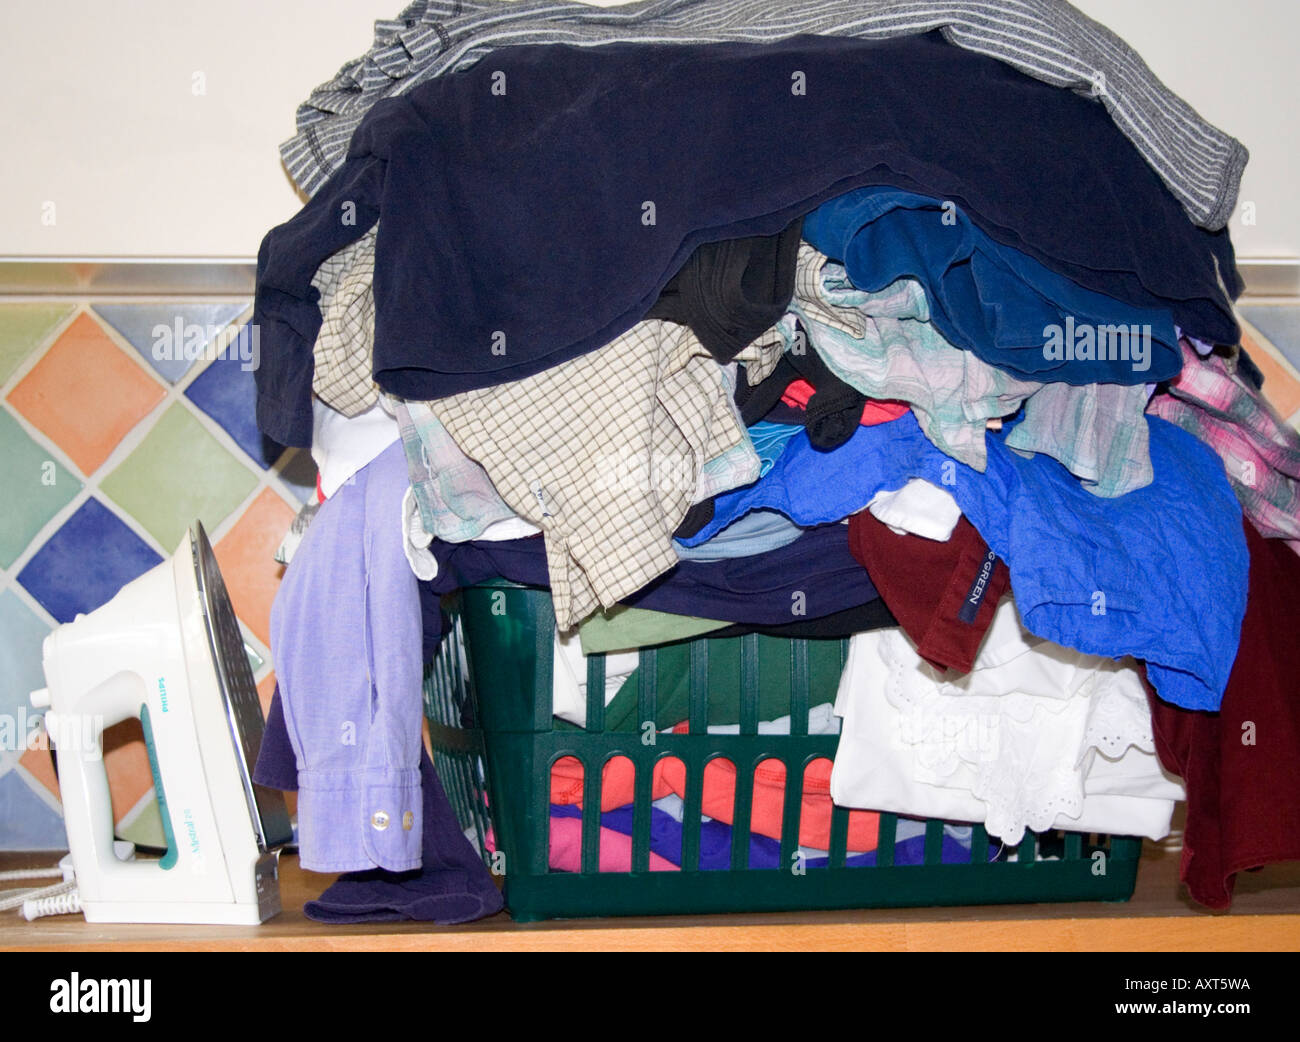 A pile of clothes. Ironing. Laundry basket. Steam iron. - Stock Image